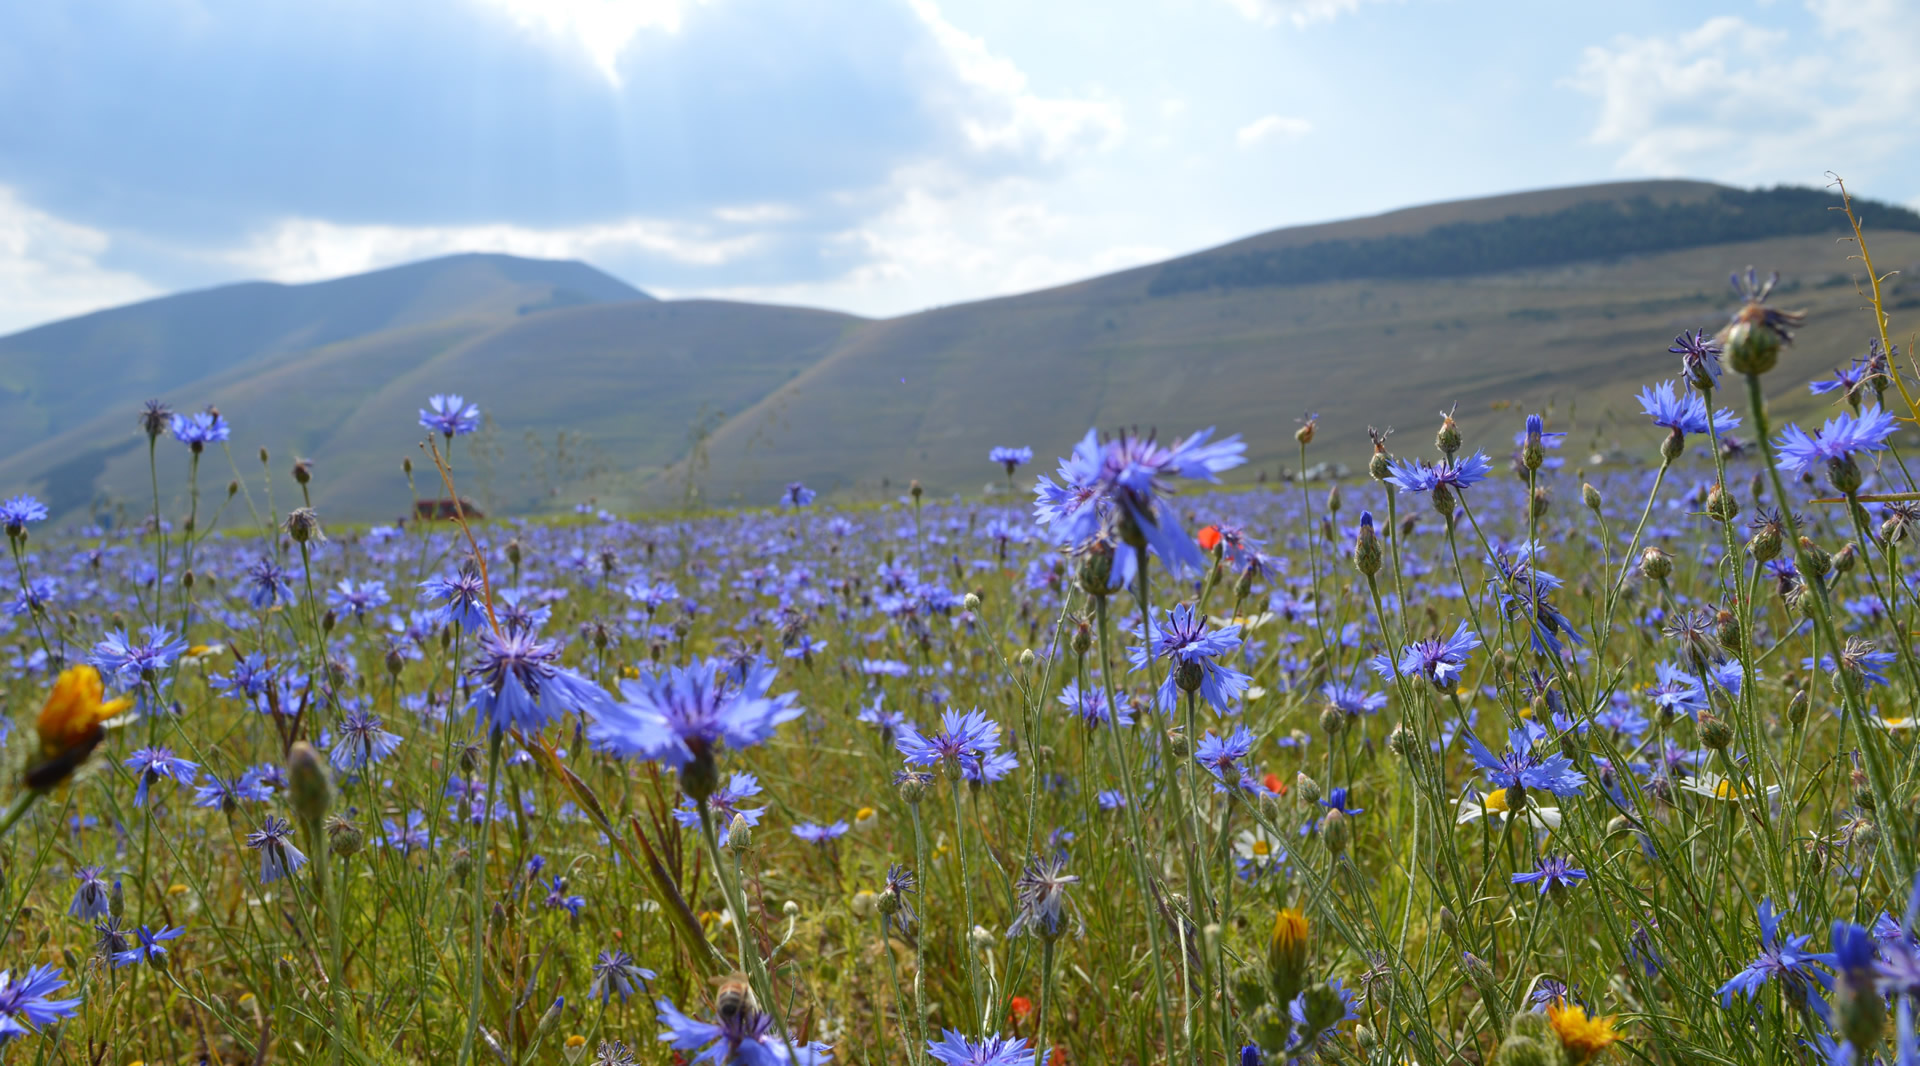 The Plains of Castelluccio di Norcia